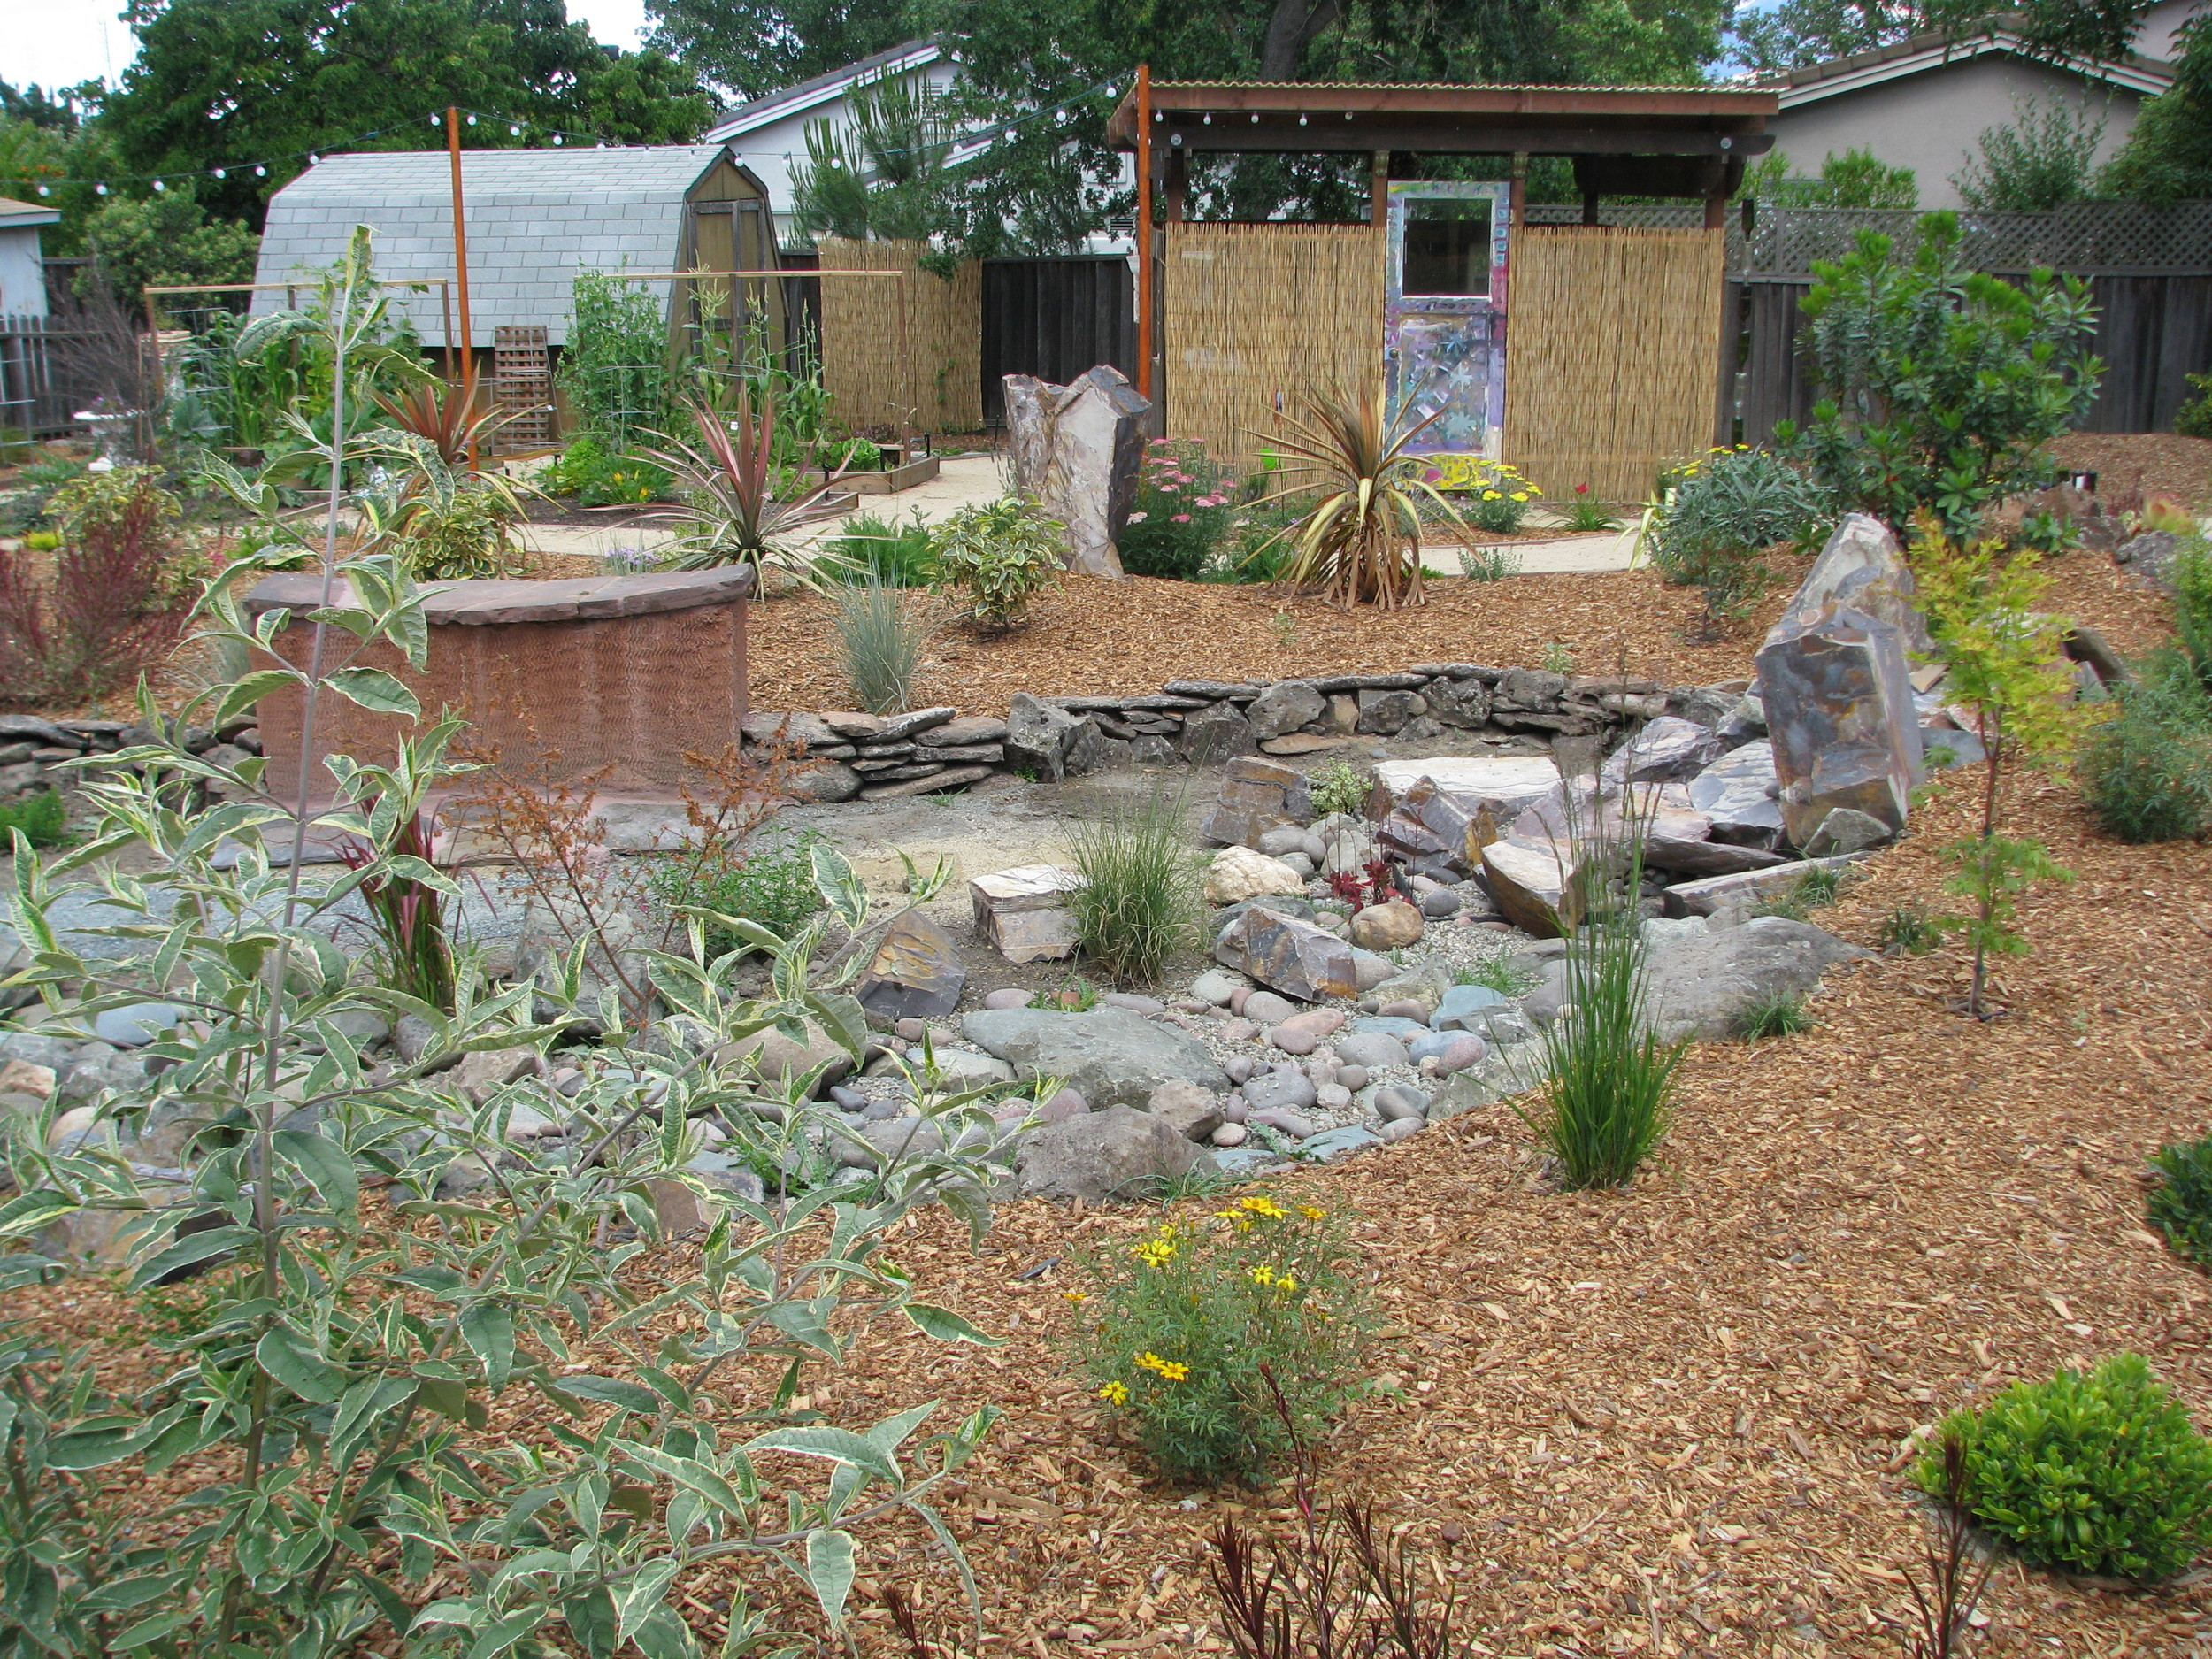 No paving, using decomposed granite and gravel for maximum water retention.